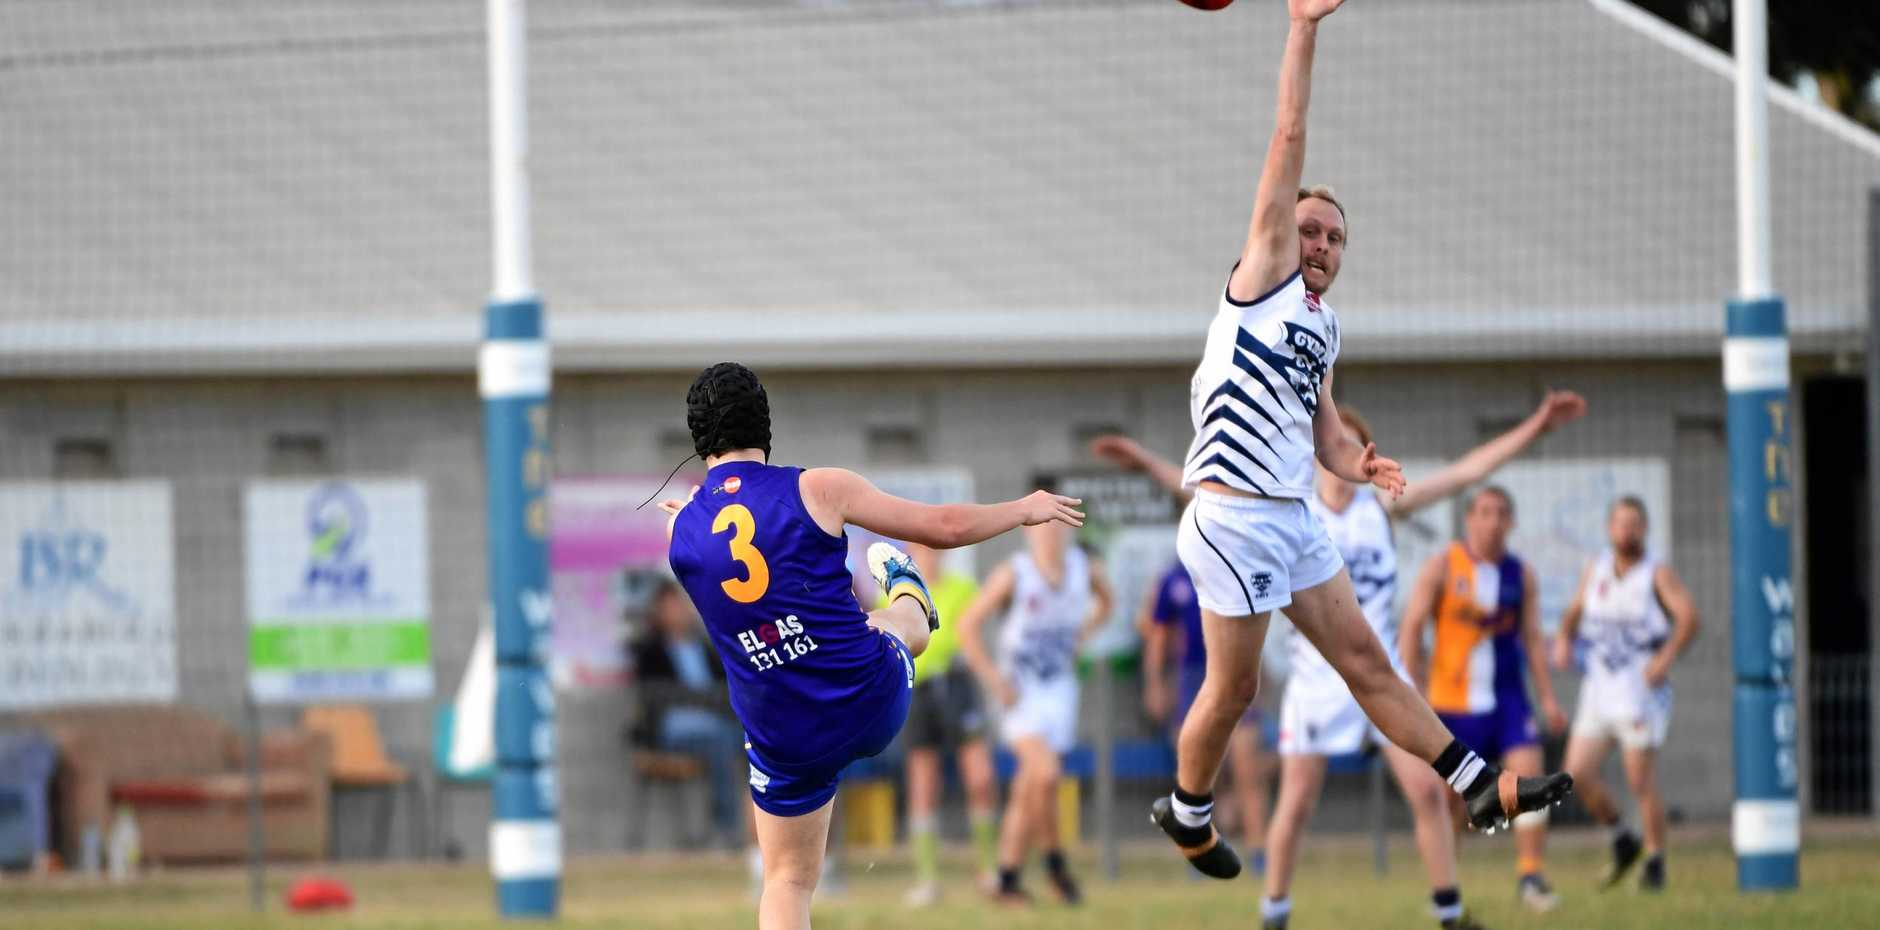 ALL RISE: The Waves' Damon Wood takes a shot for goal as the Cats defender attempts to stop the ball at Frank Coulthard Oval on Saturday.